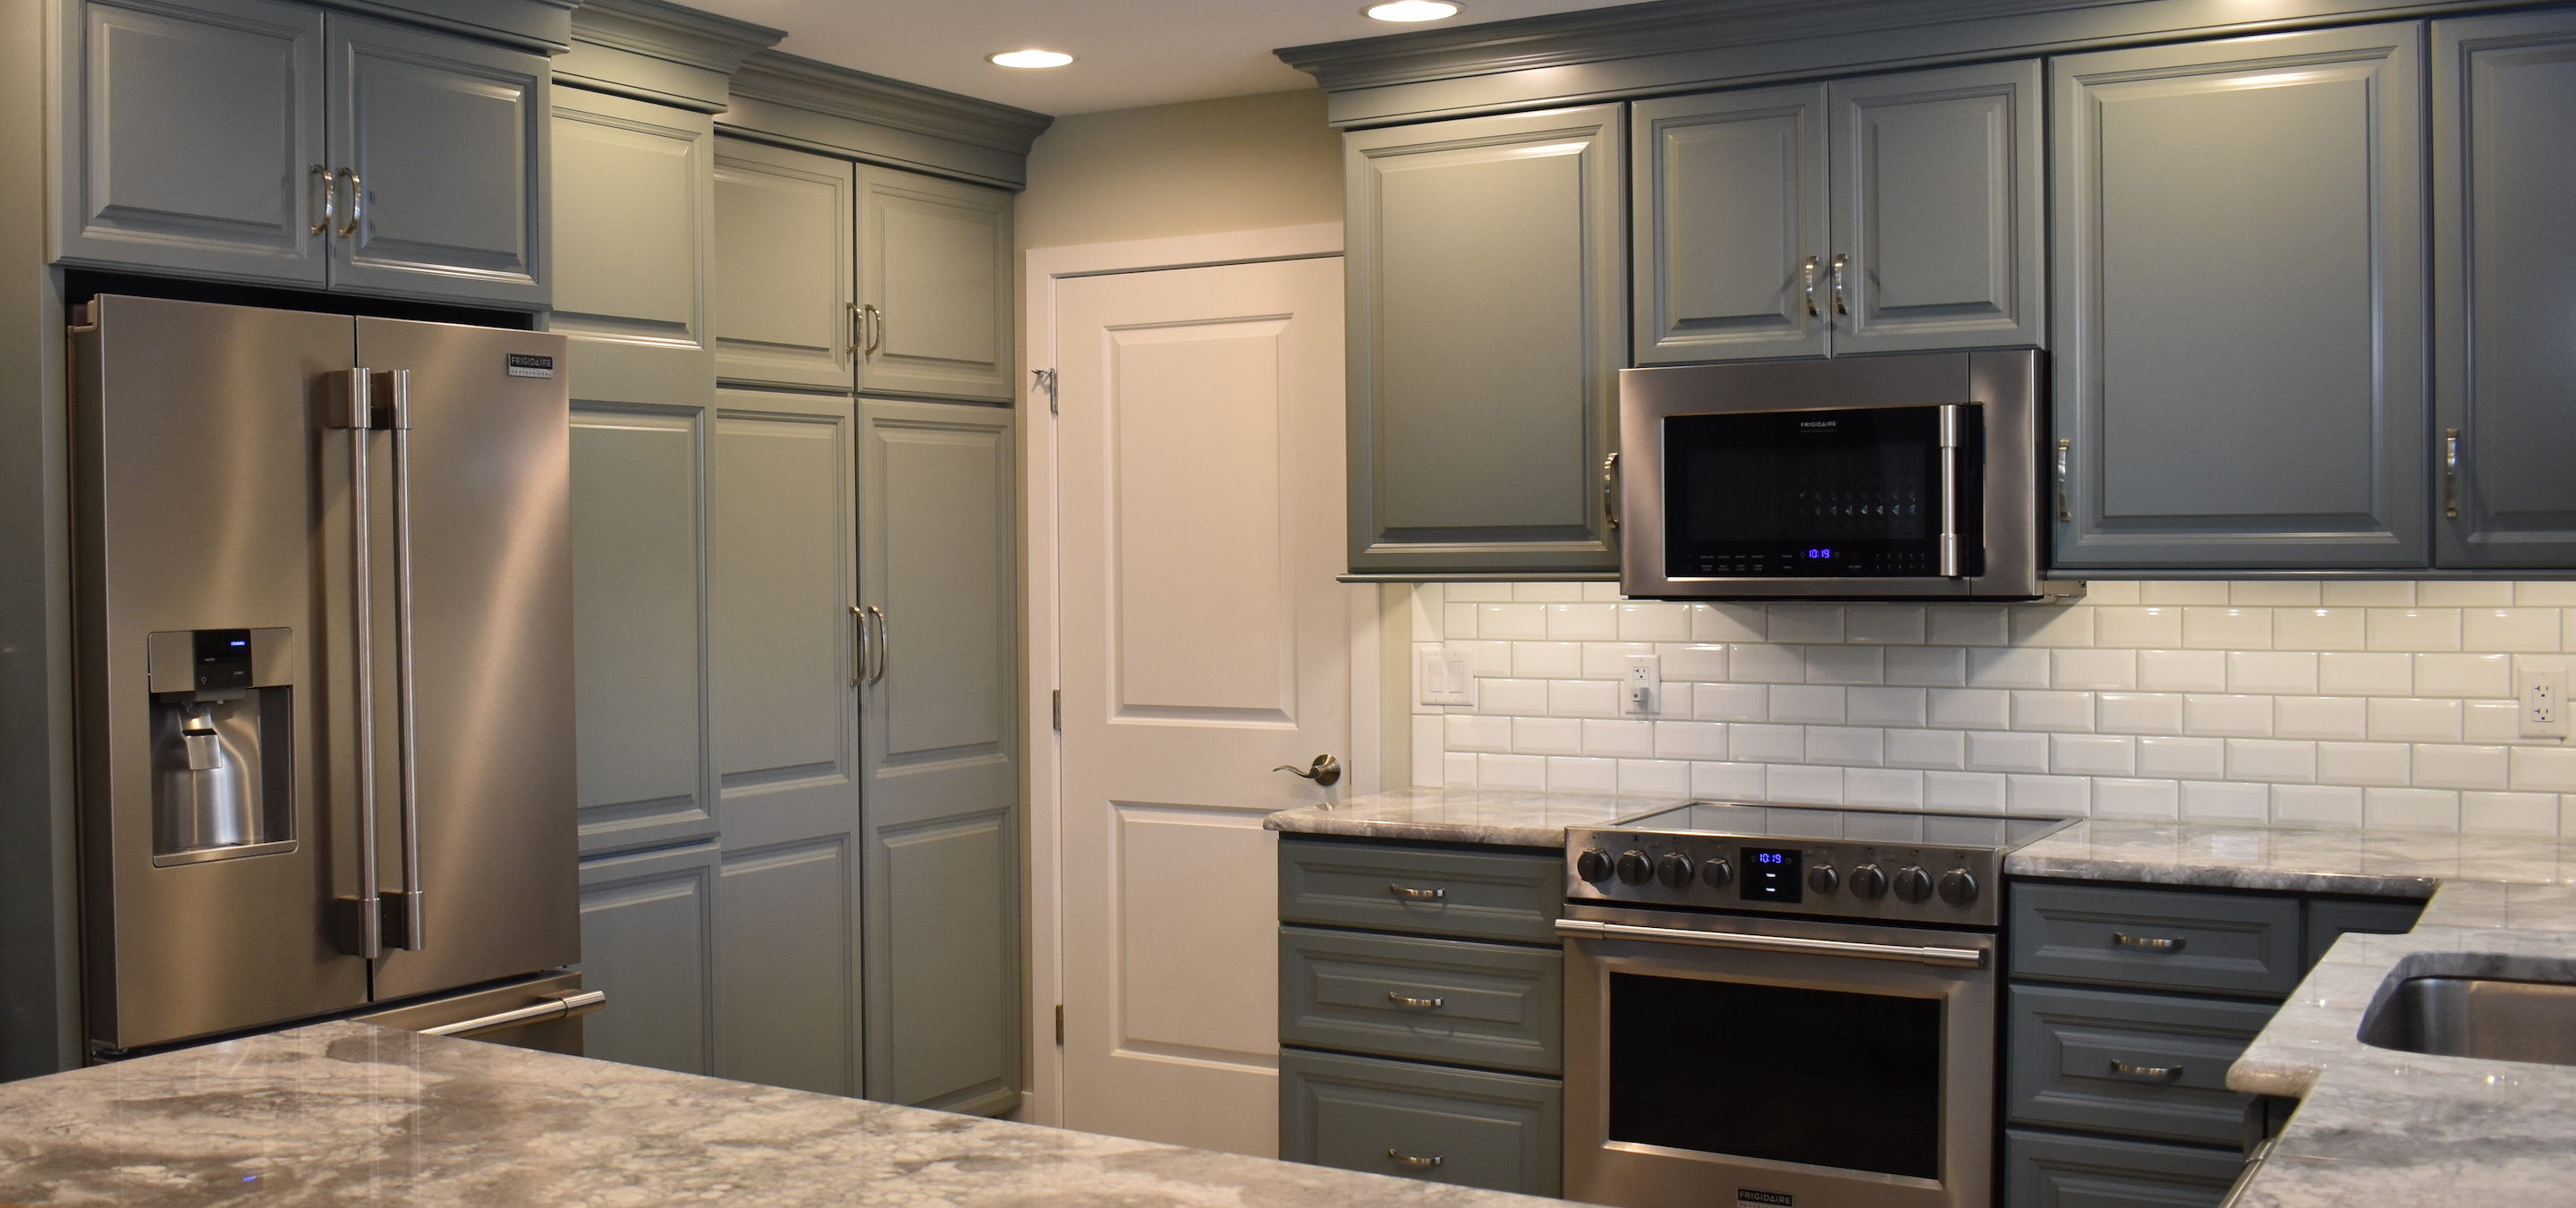 m and r kitchen cabinets rm kitchens inc custom cabinet makers amp installers in 22956